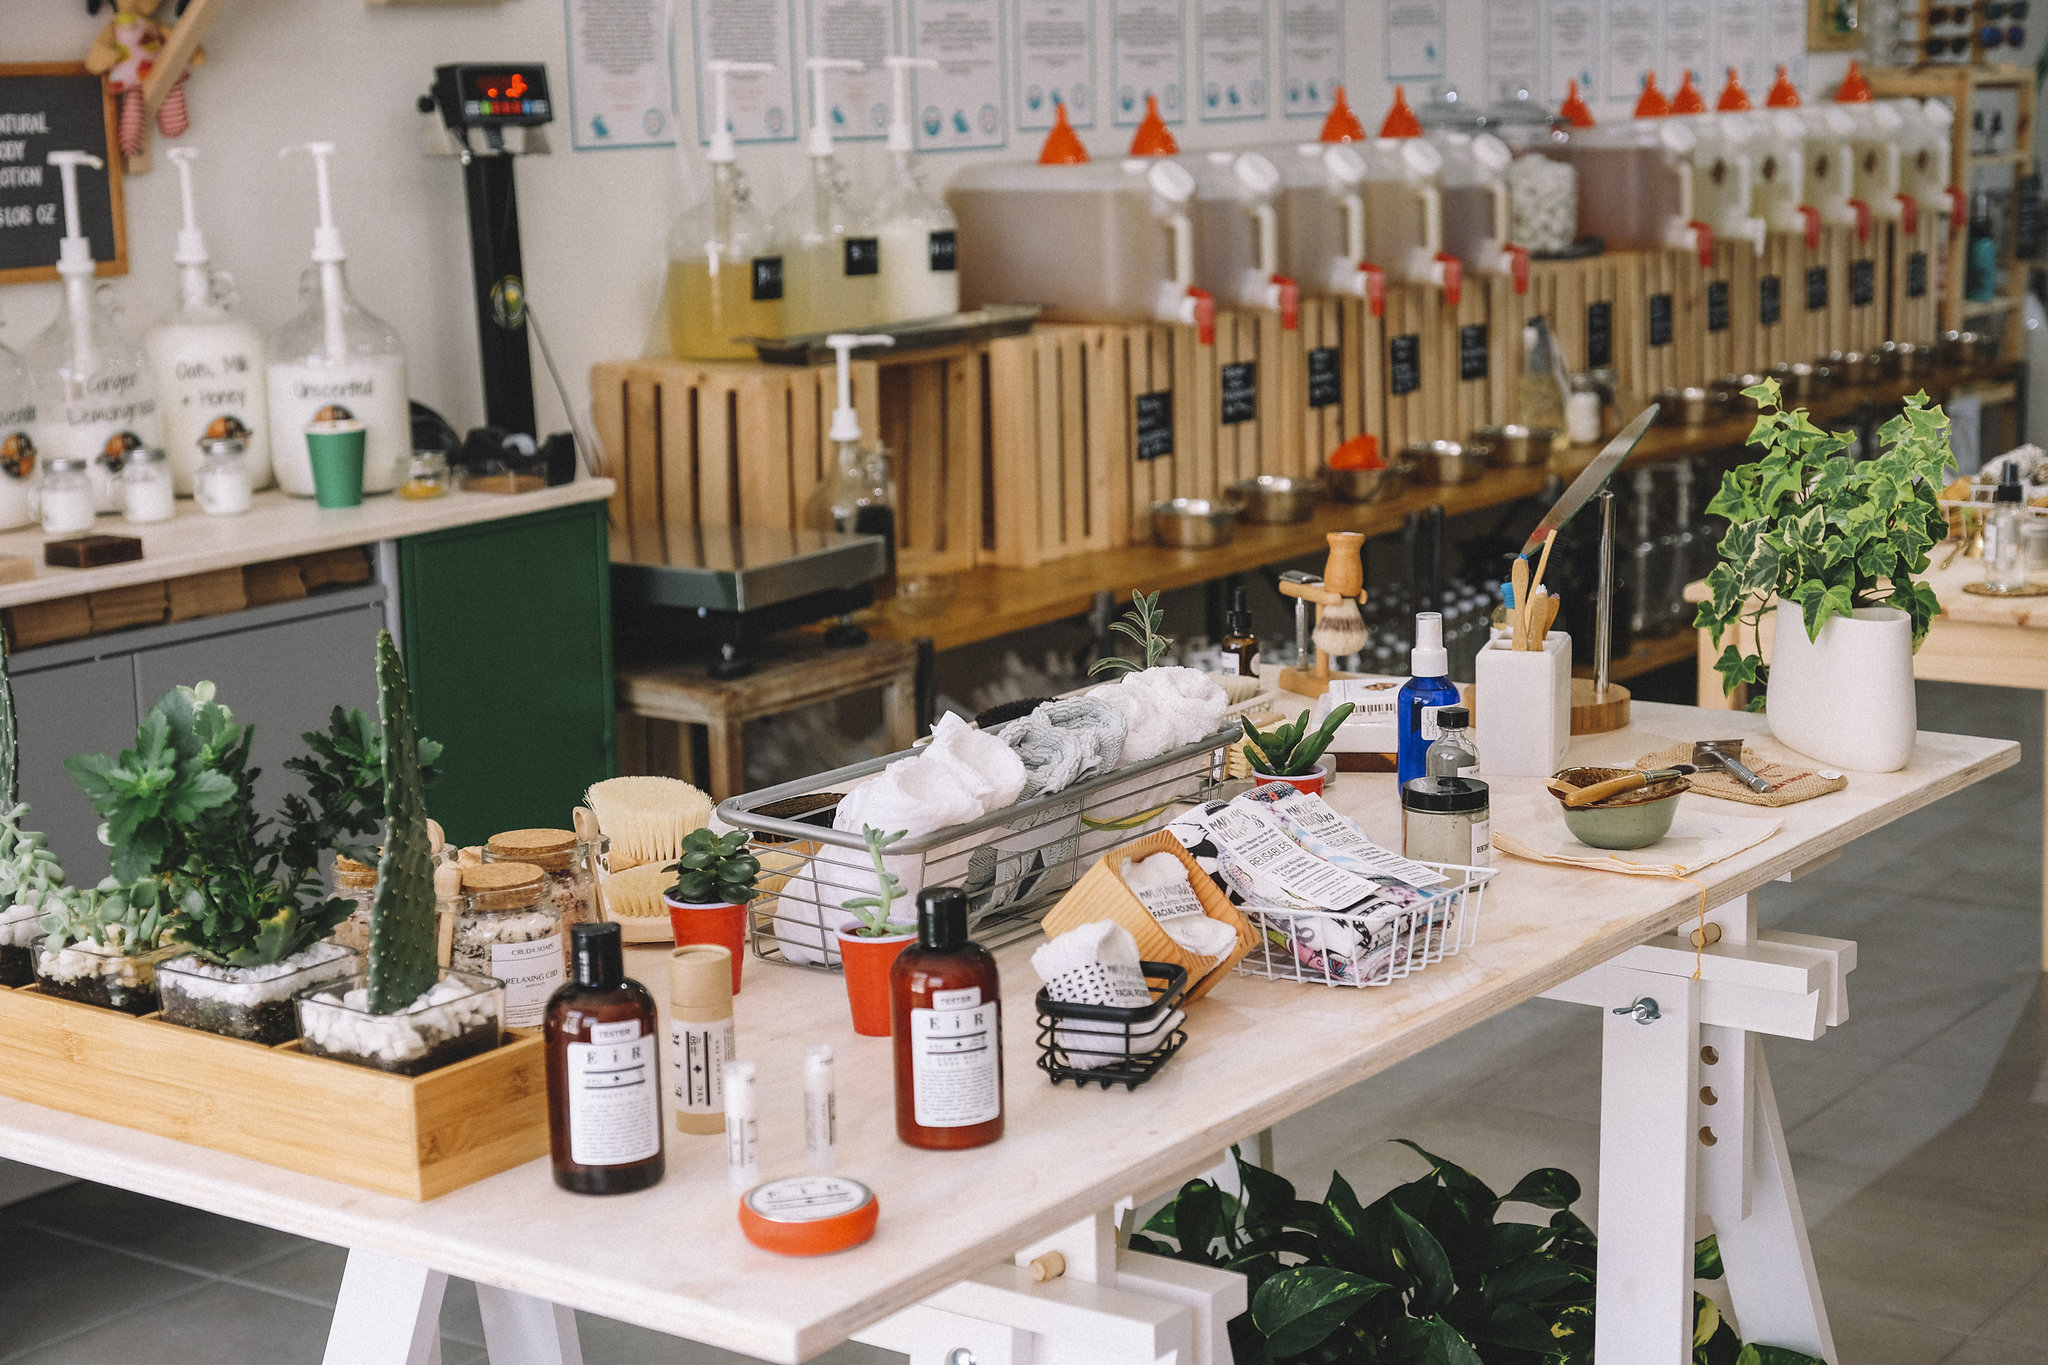 Verde Market in Miami's Wynwood Arts District allows customers to bring their own containers to fill up on everyday items like laundry detergent, dish soap and more.